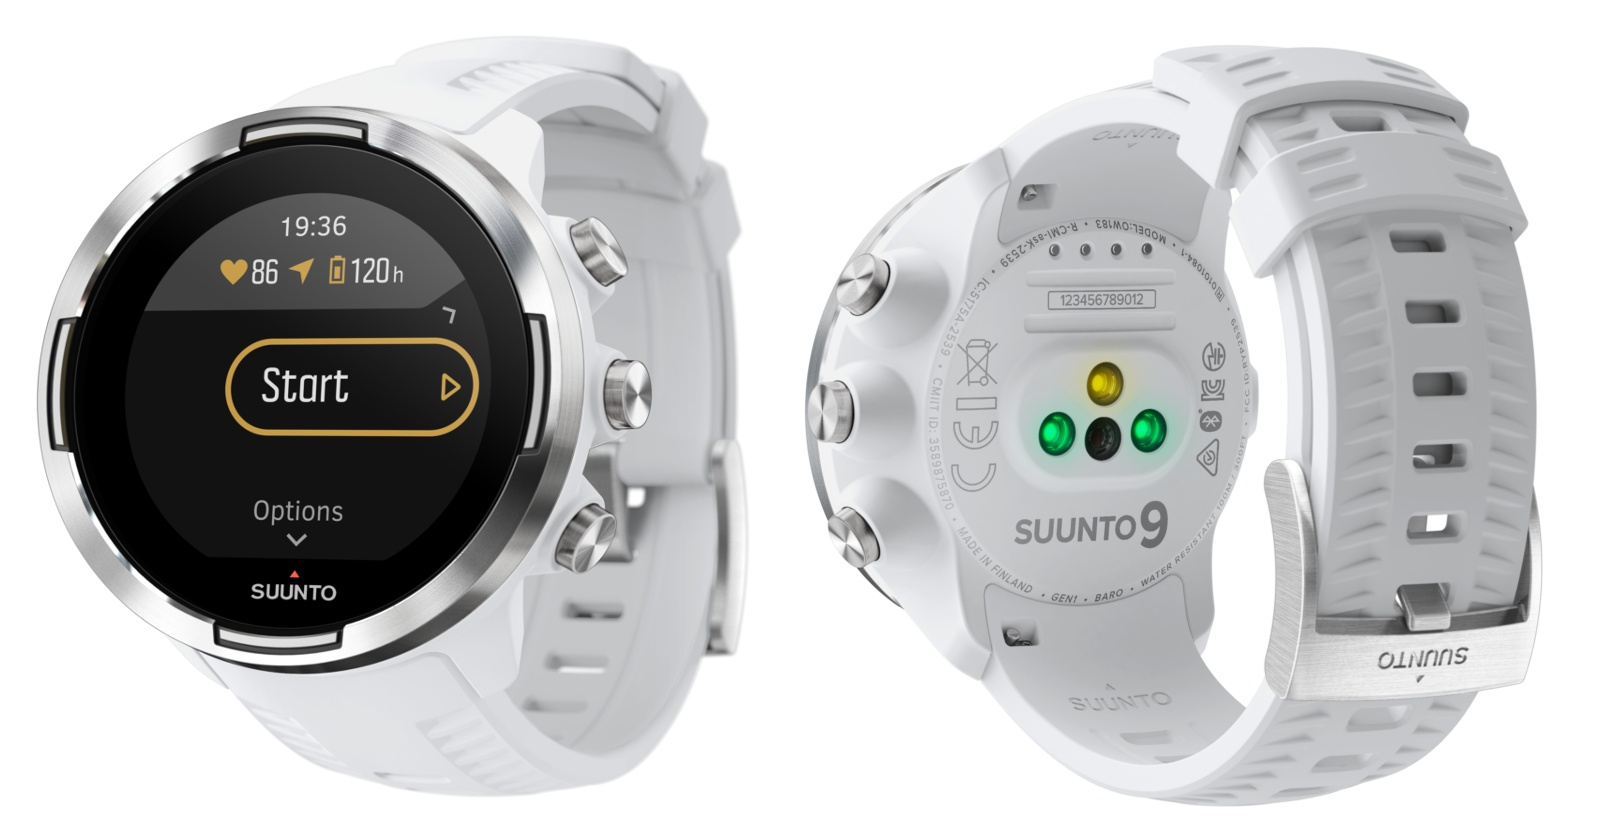 Suunto Launches the New Suunto 9 Baro in Malaysia